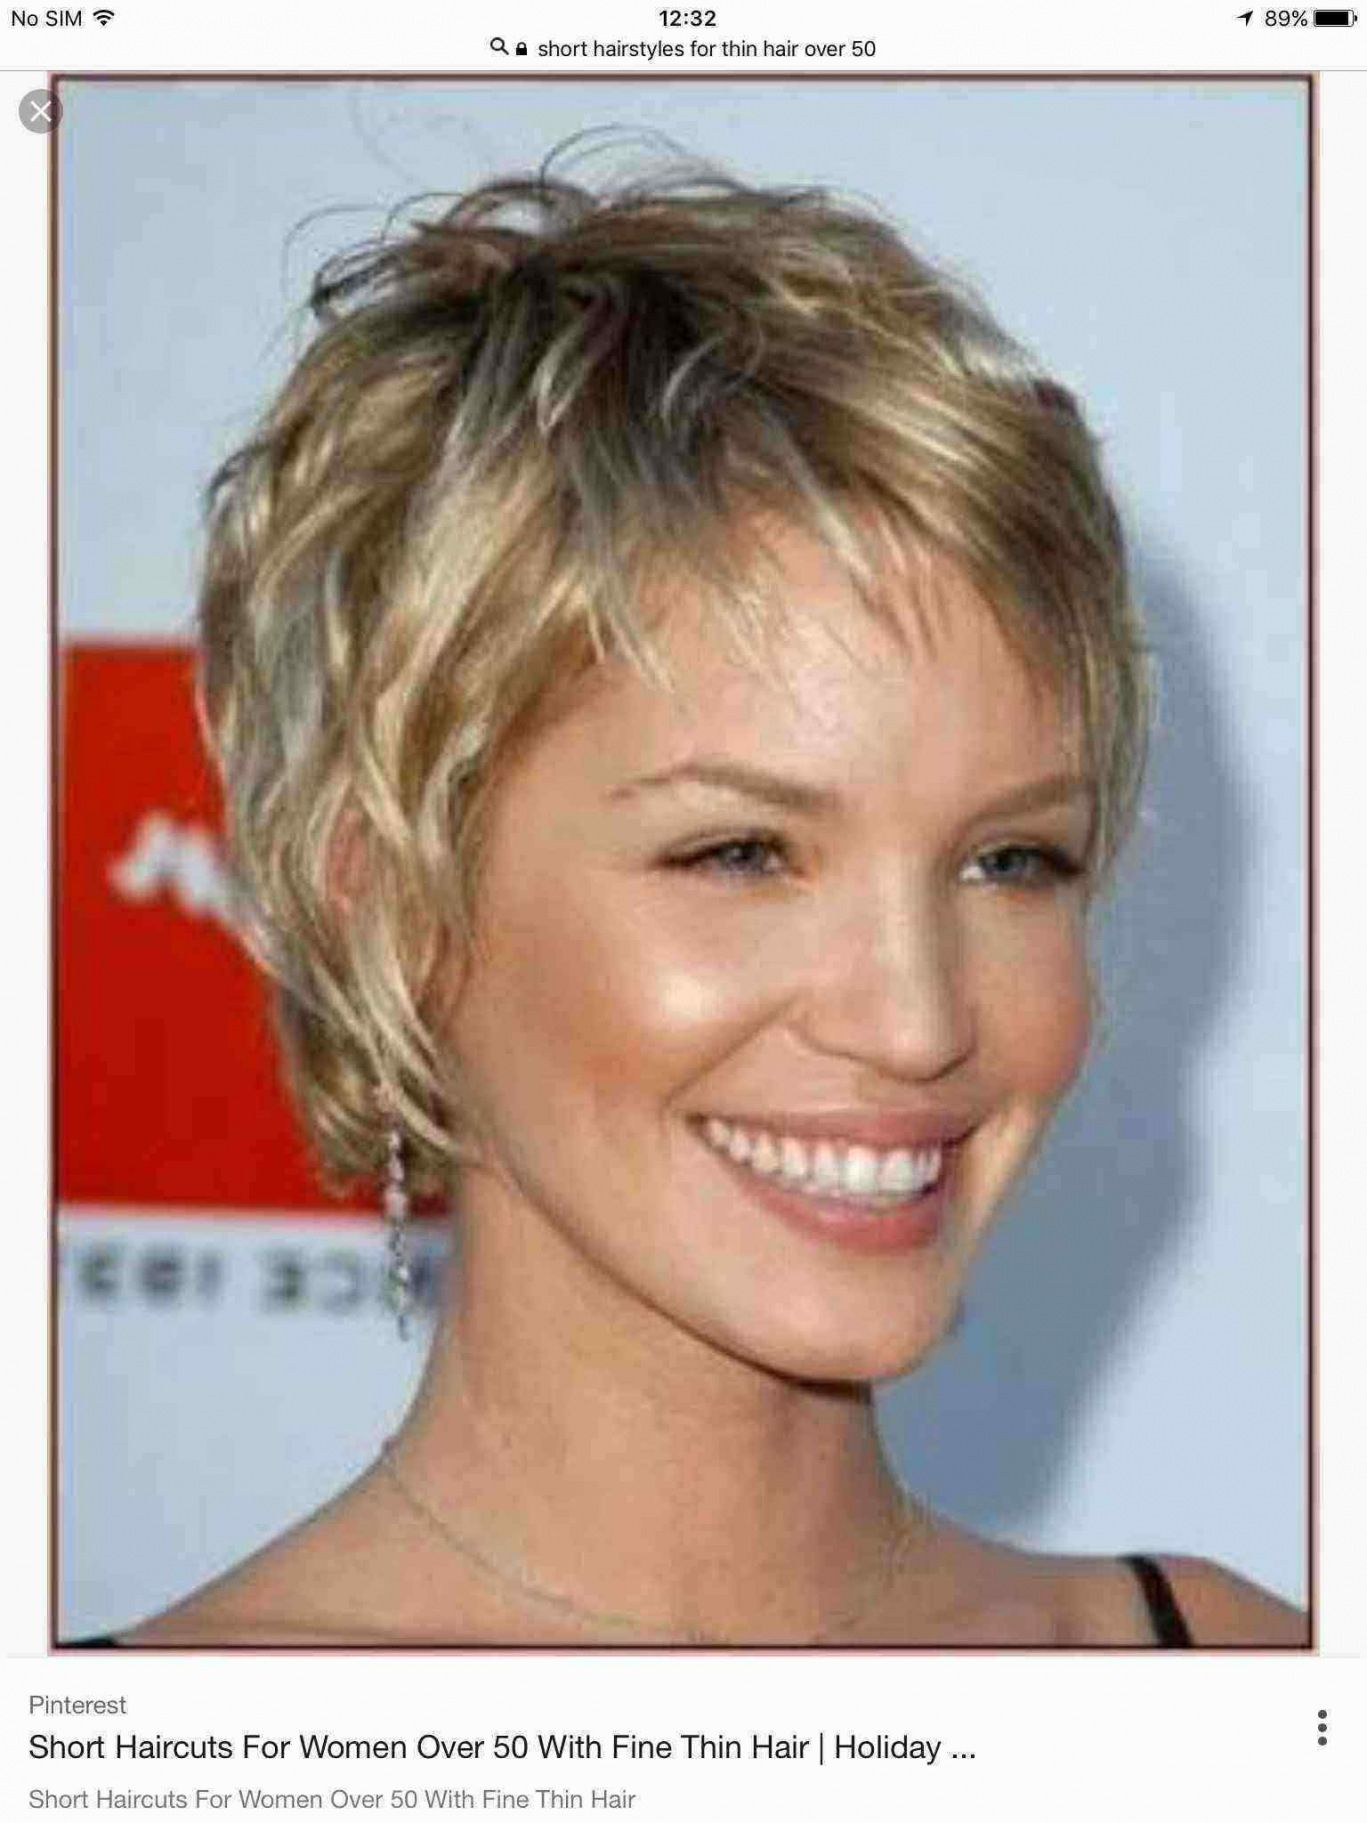 Hairstyle Round Face Over 50 Brunette Short Thin Hair Short Hairstyles Fine Thick Hair Styles